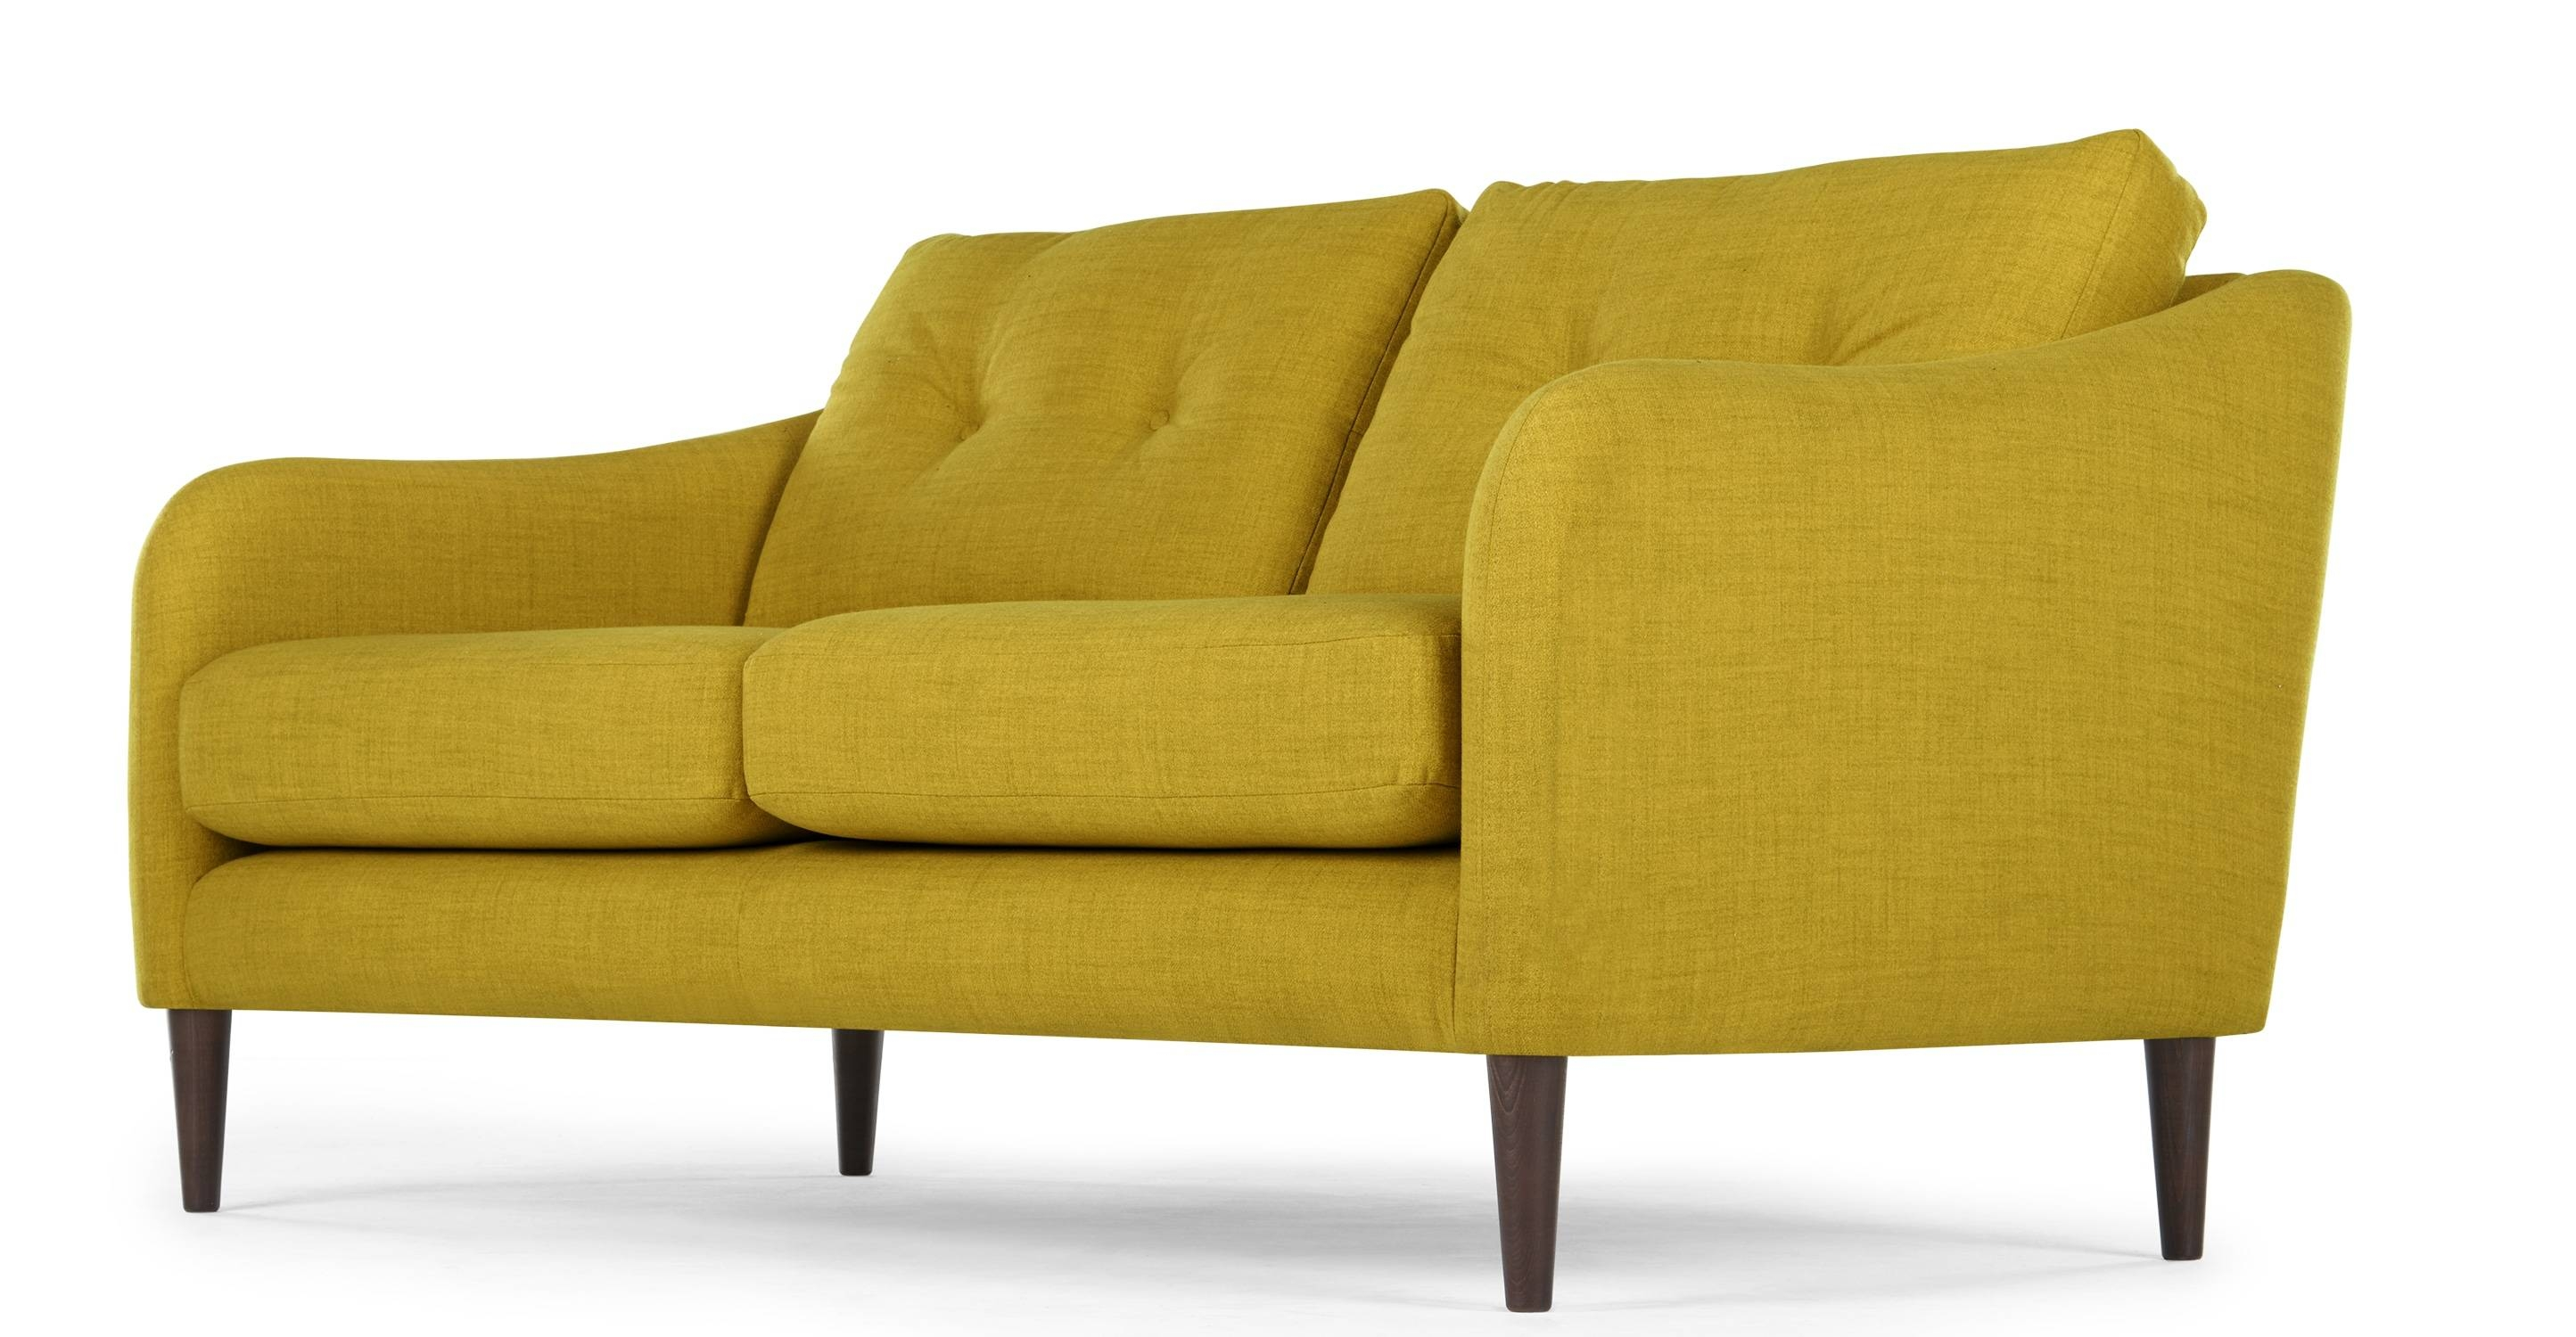 Contentterrence Conran Alban 2 Seater Sofa, Chartreuse | Made with regard to Chartreuse Sofas (Image 7 of 15)